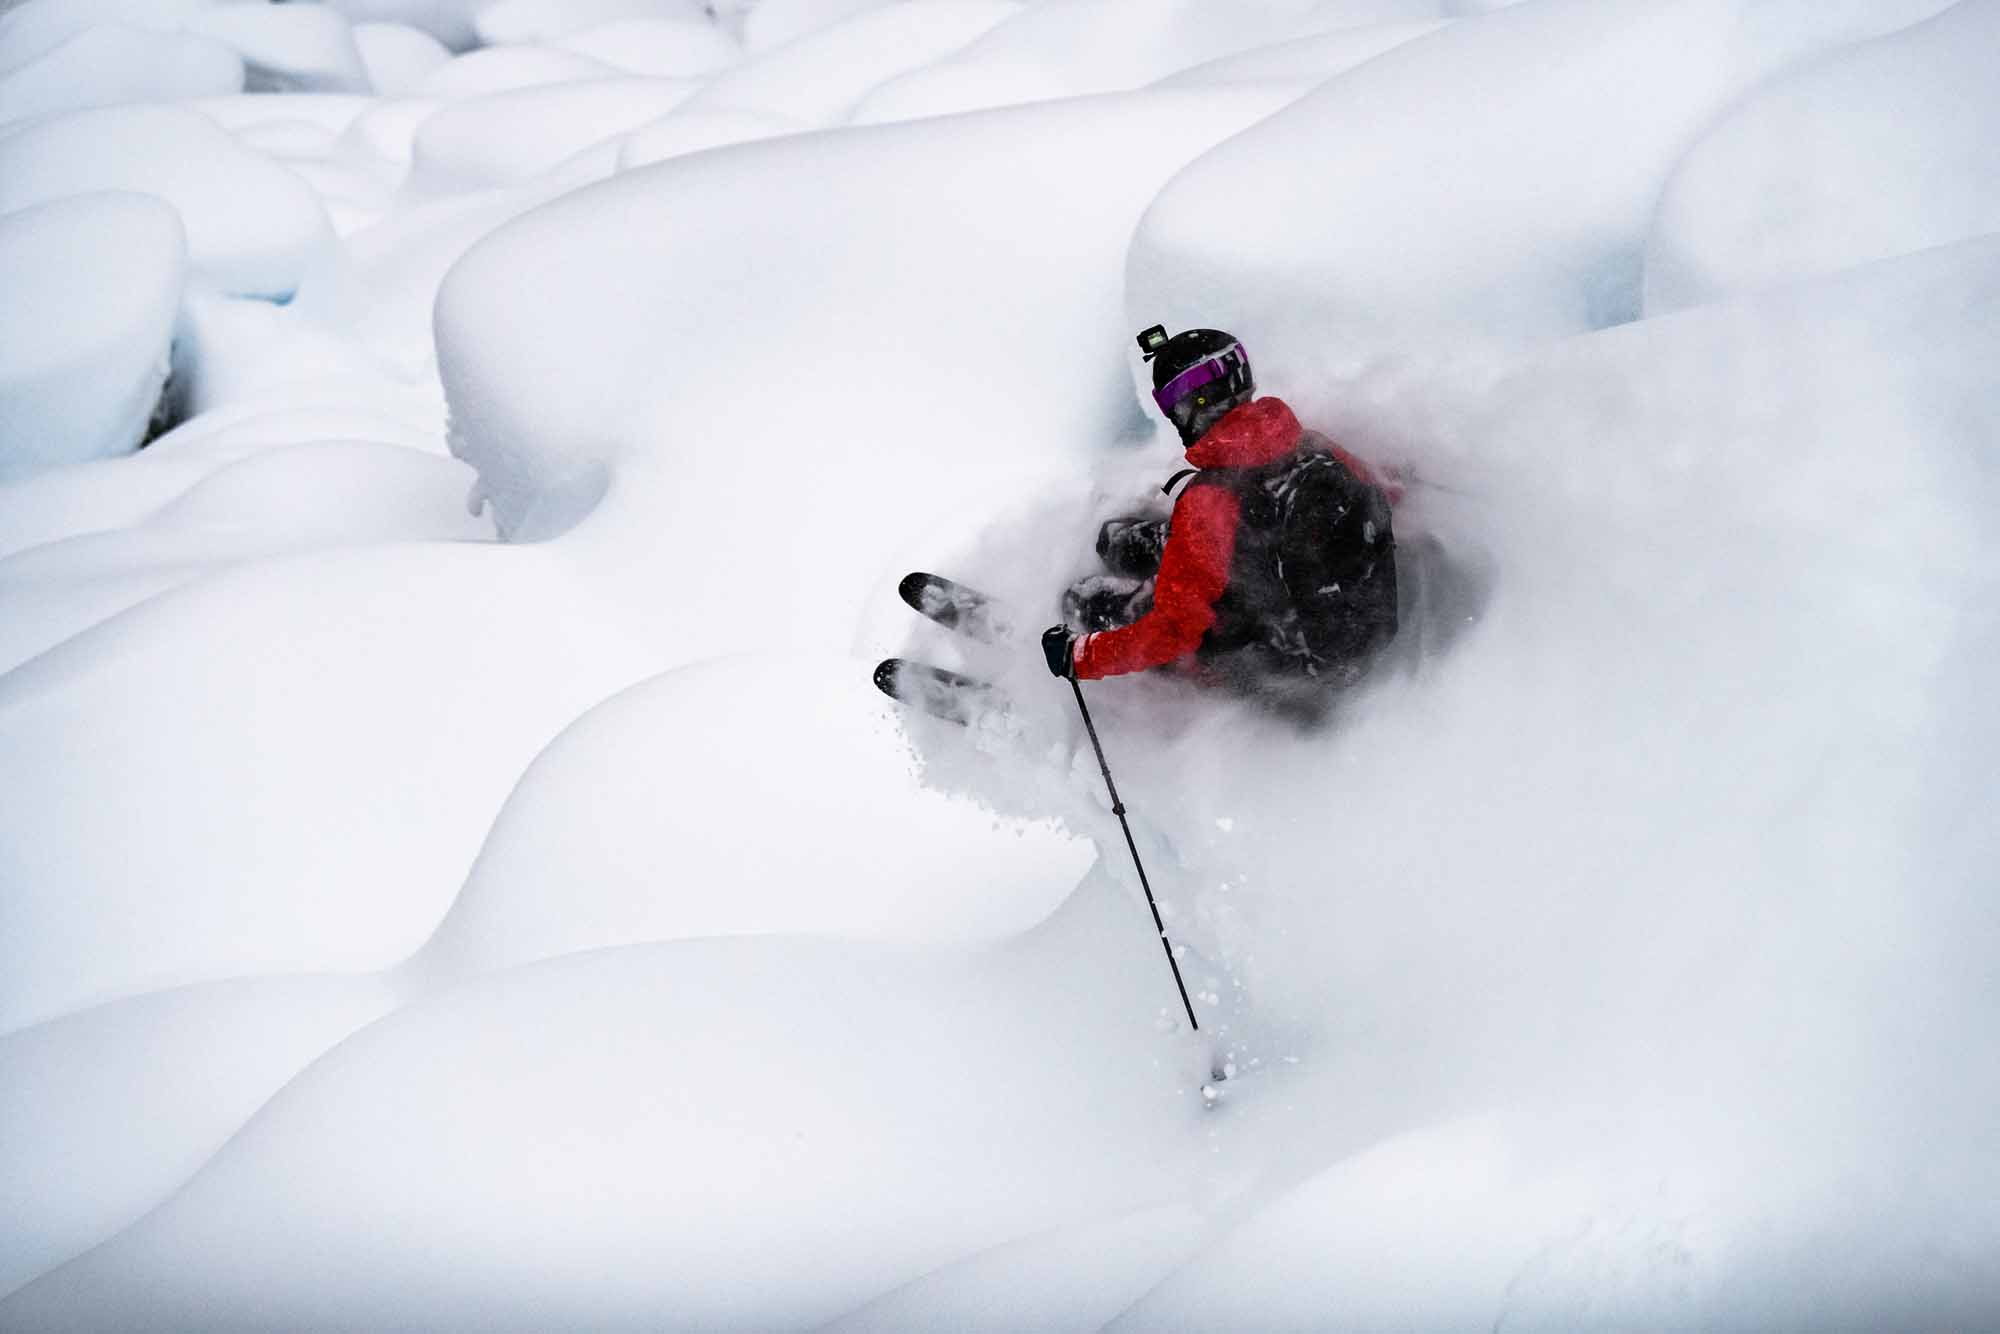 Pillow-Fights-in-the-Sea-to-Sky-skier-Tobin-Seagel-Pemberton-photo-Andrew-Strain